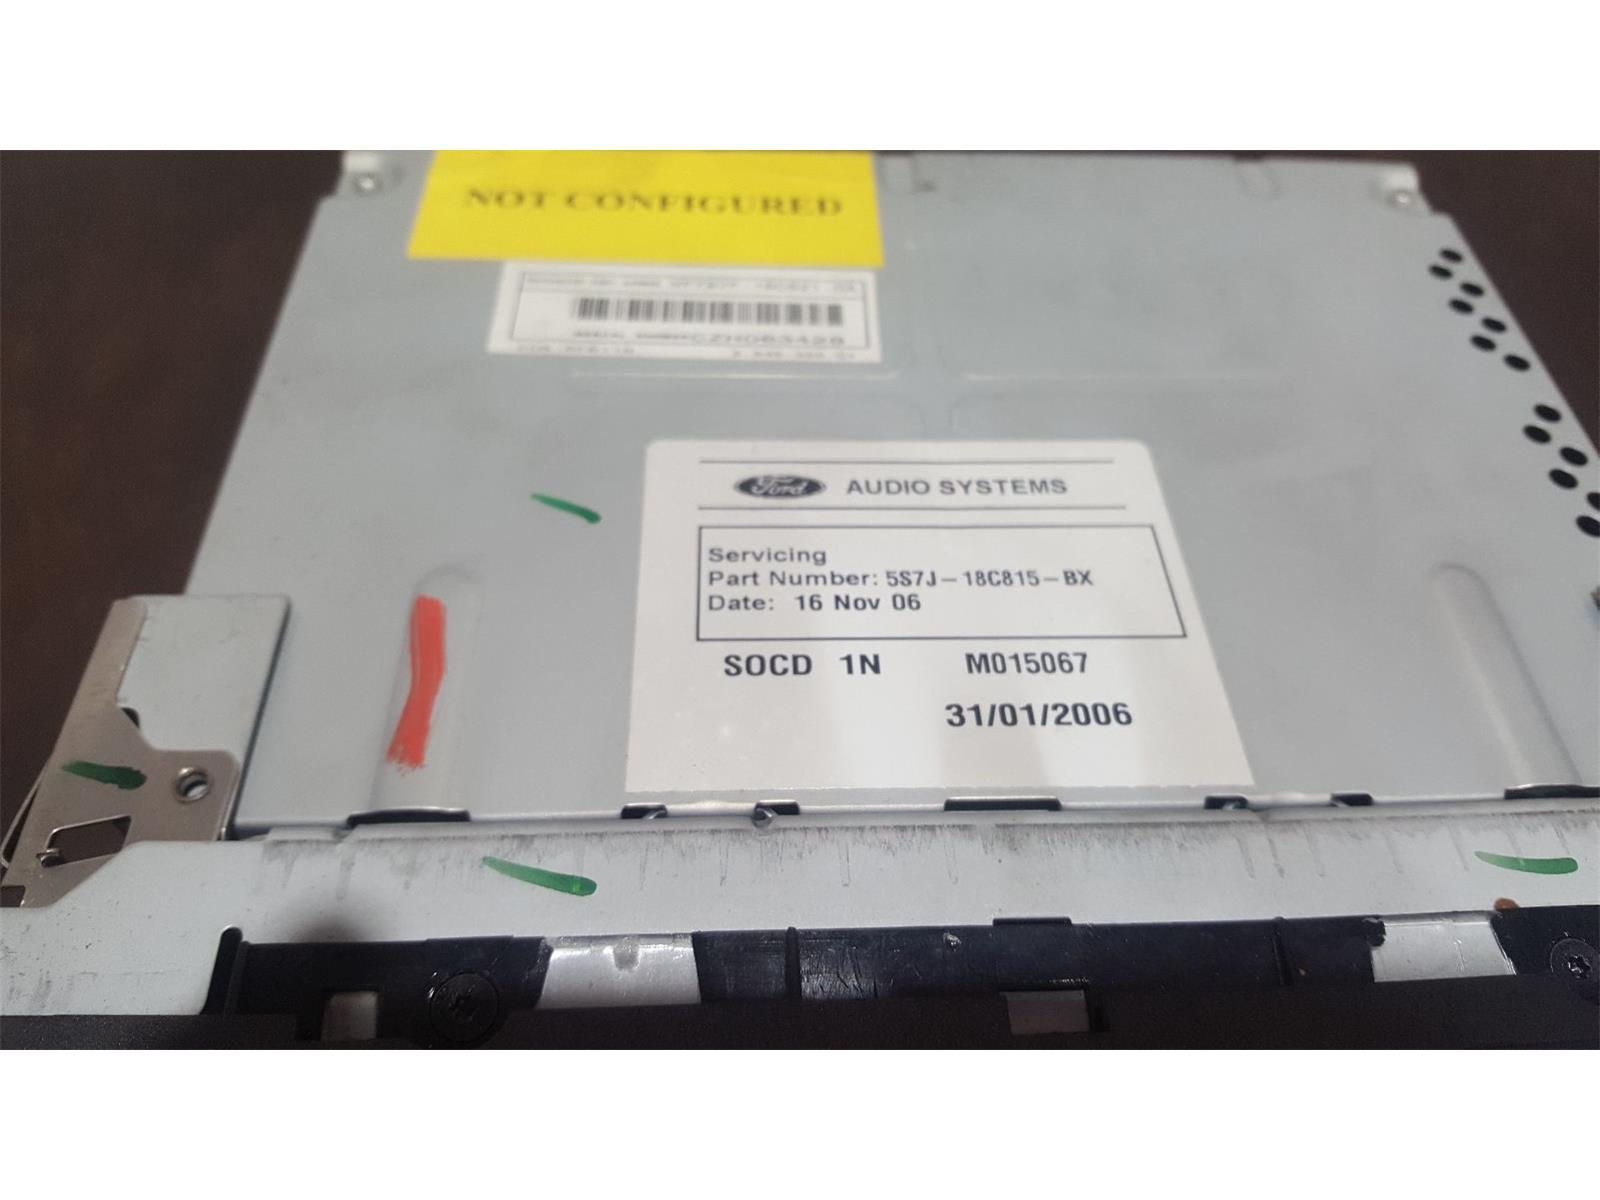 Ford Focus 2005 To 2007 Titanium Radio Cd Player Used And Spare Parts At Combellack Vehicle Recyclers